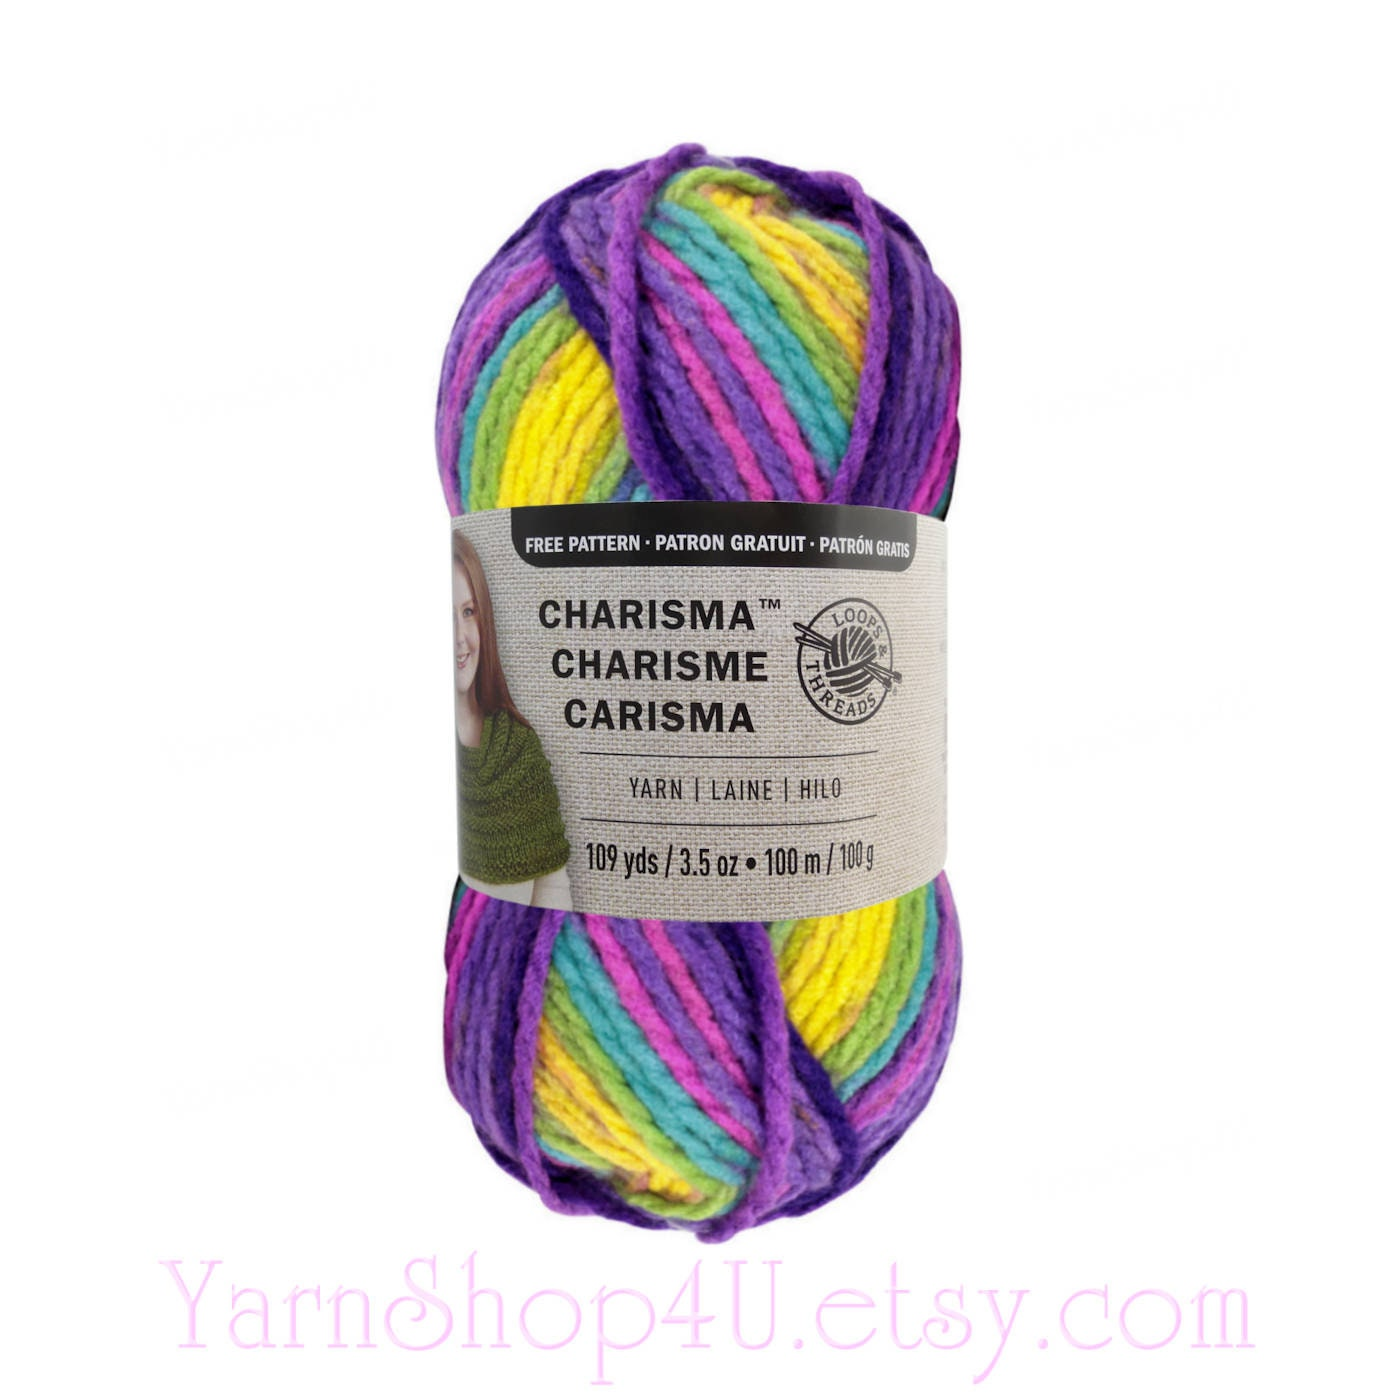 PASSION Bulky Charisma Loops And Threads Yarn. This Purple